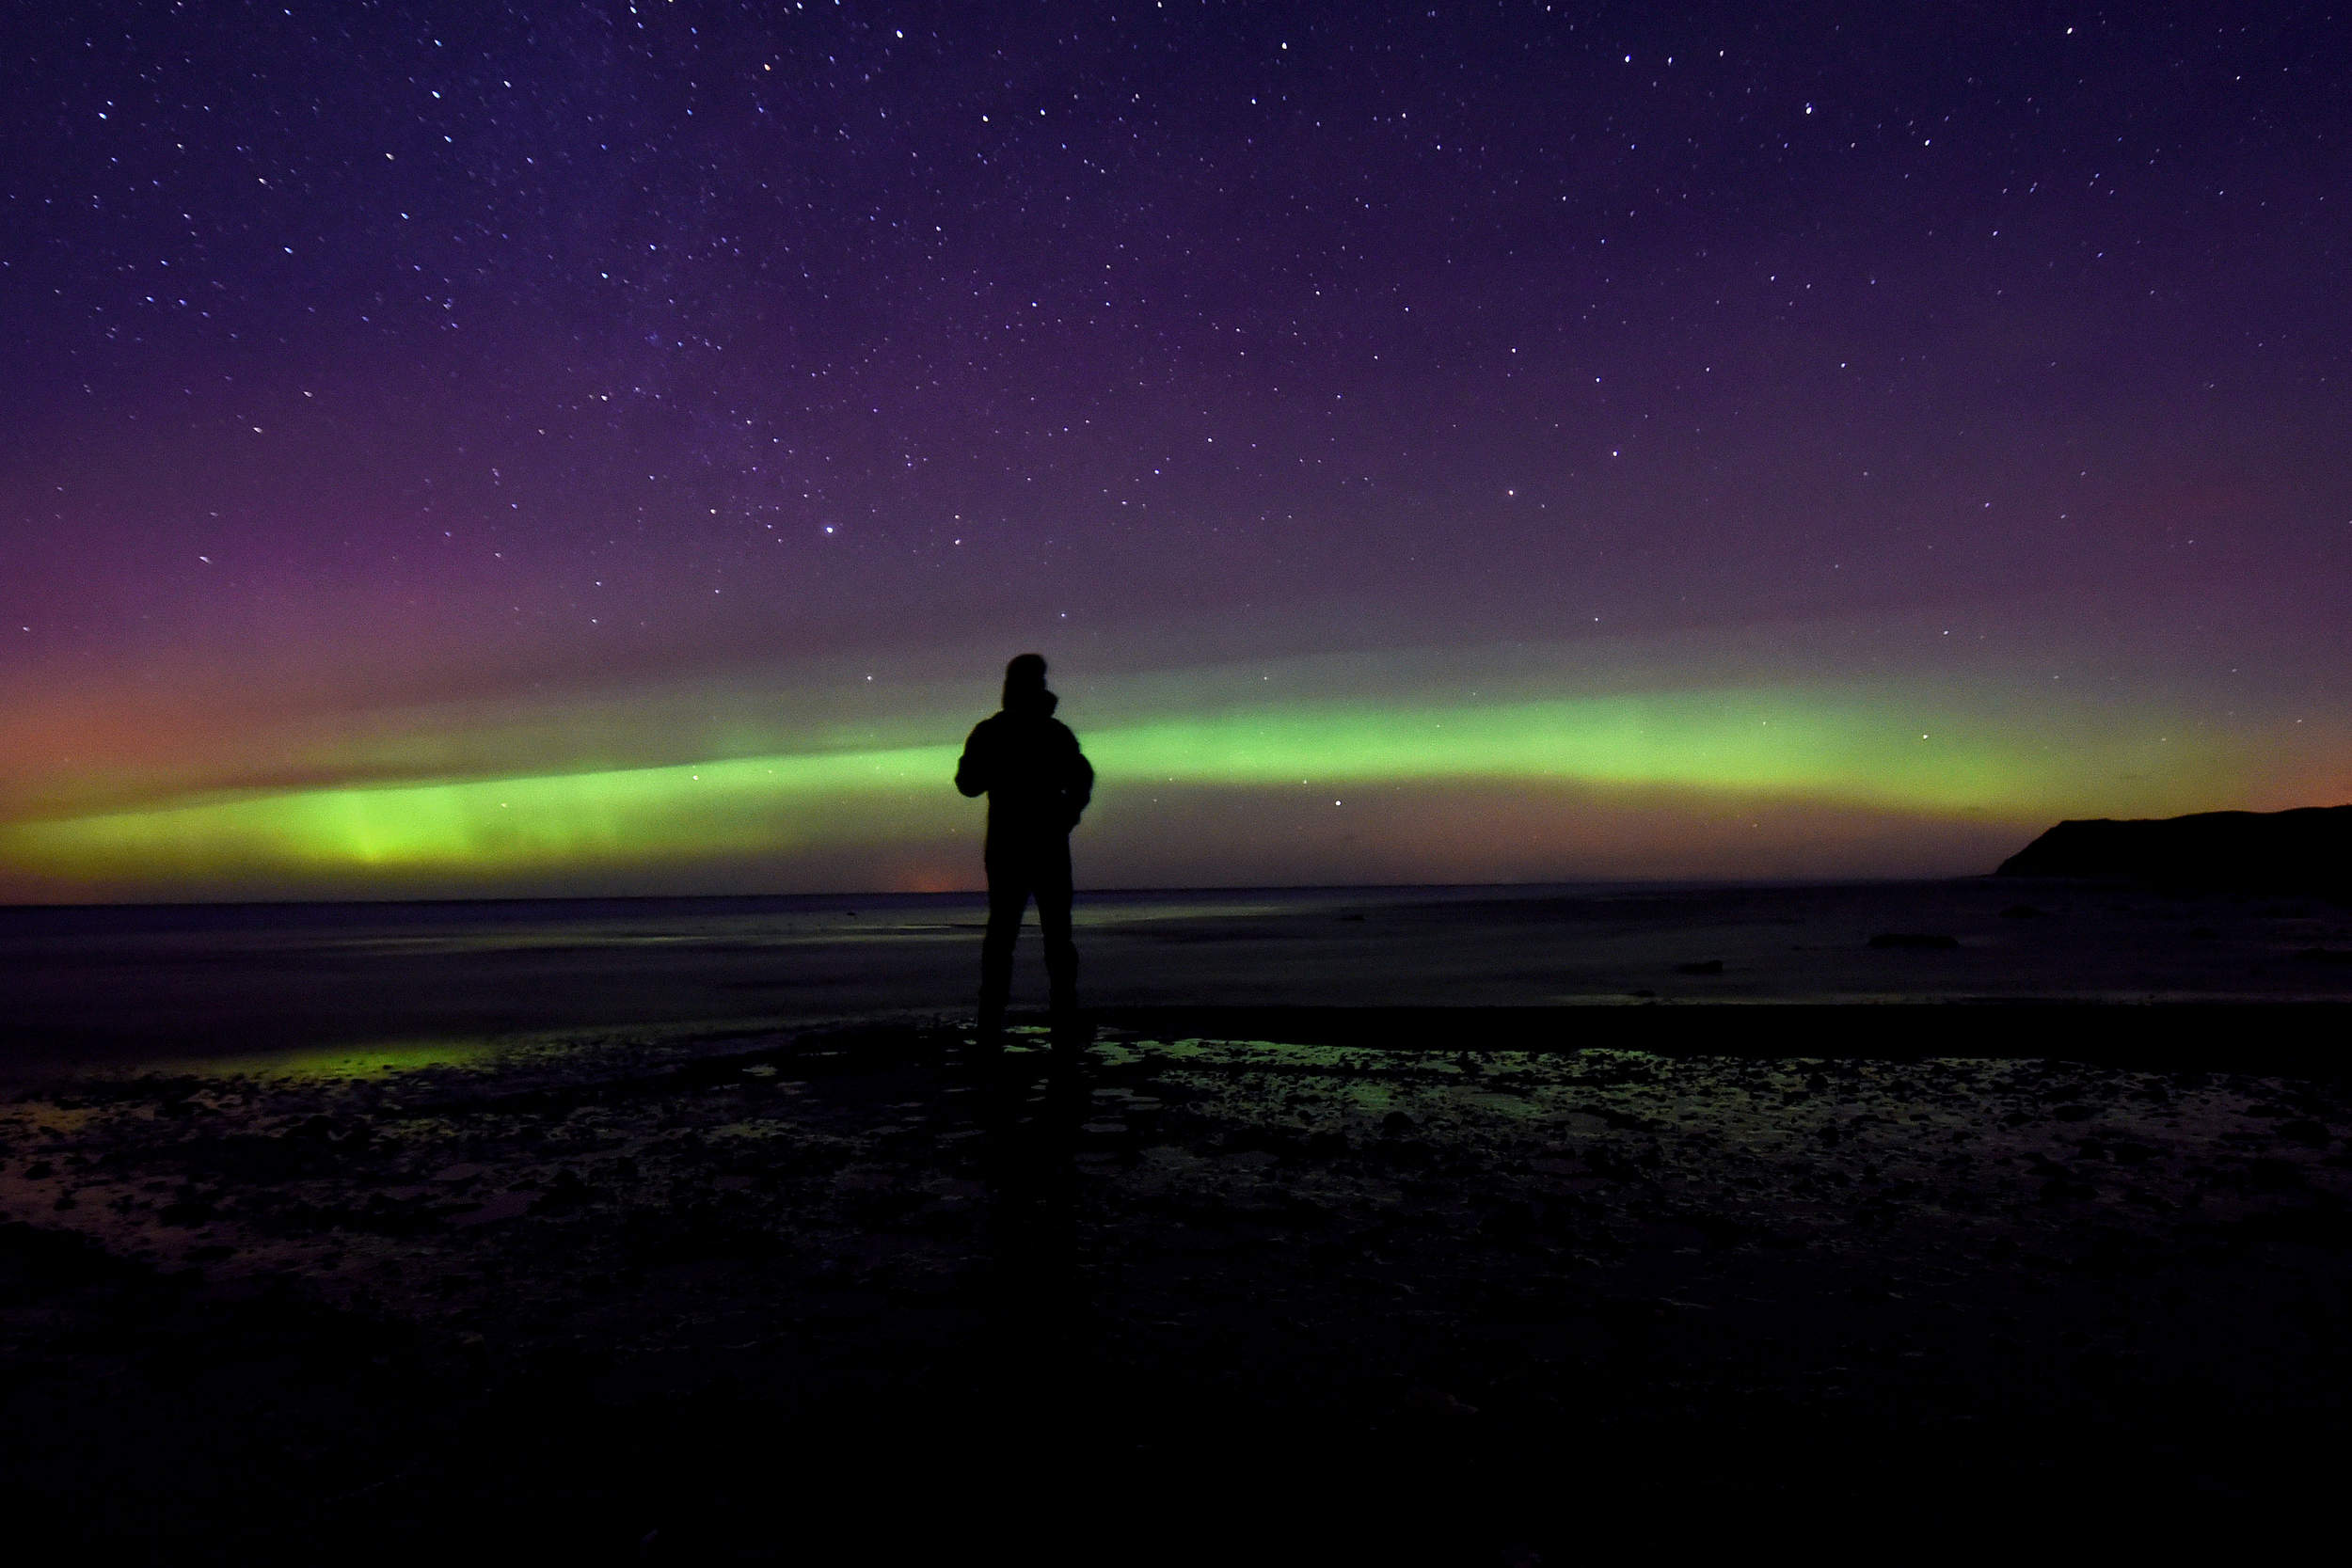 The aurora borealis, or northern lights, seen from Kirk Michael beach on New Year's Day